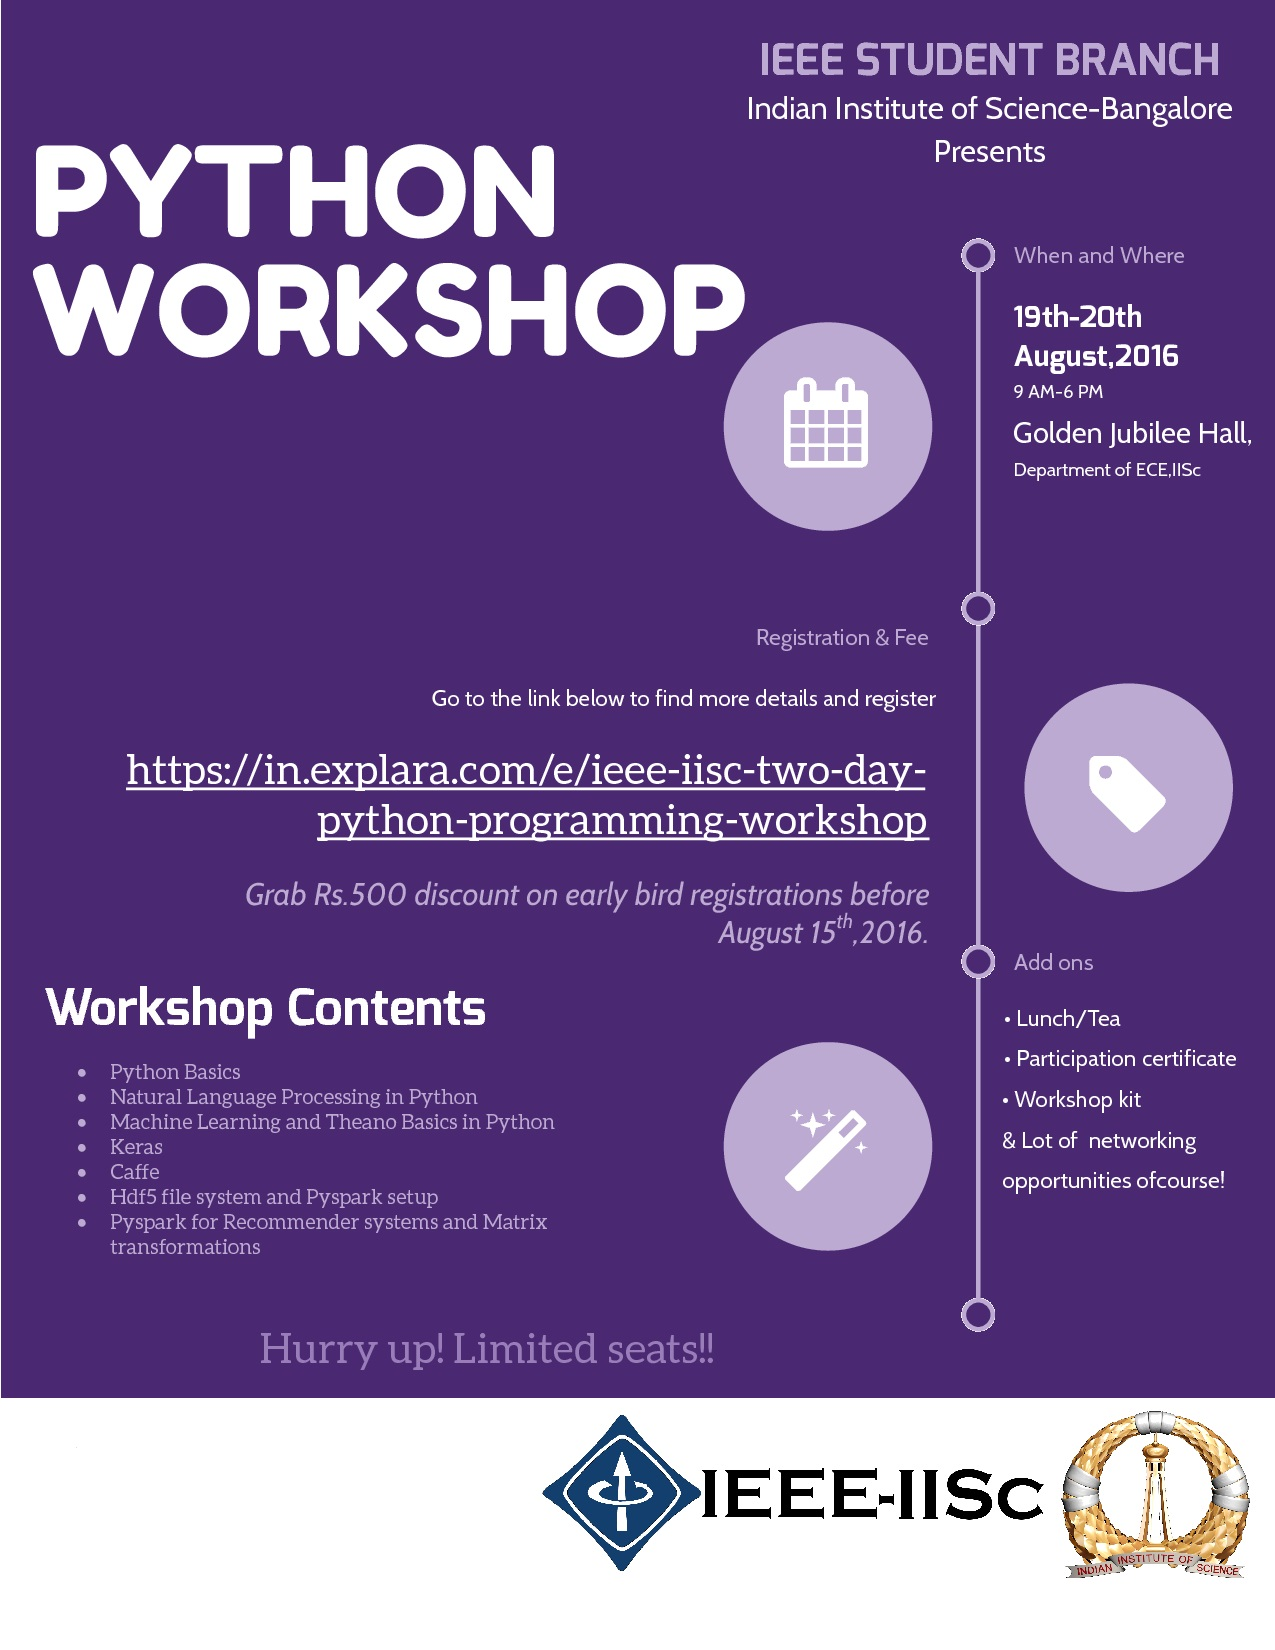 Python Workshop Flyer, IISc